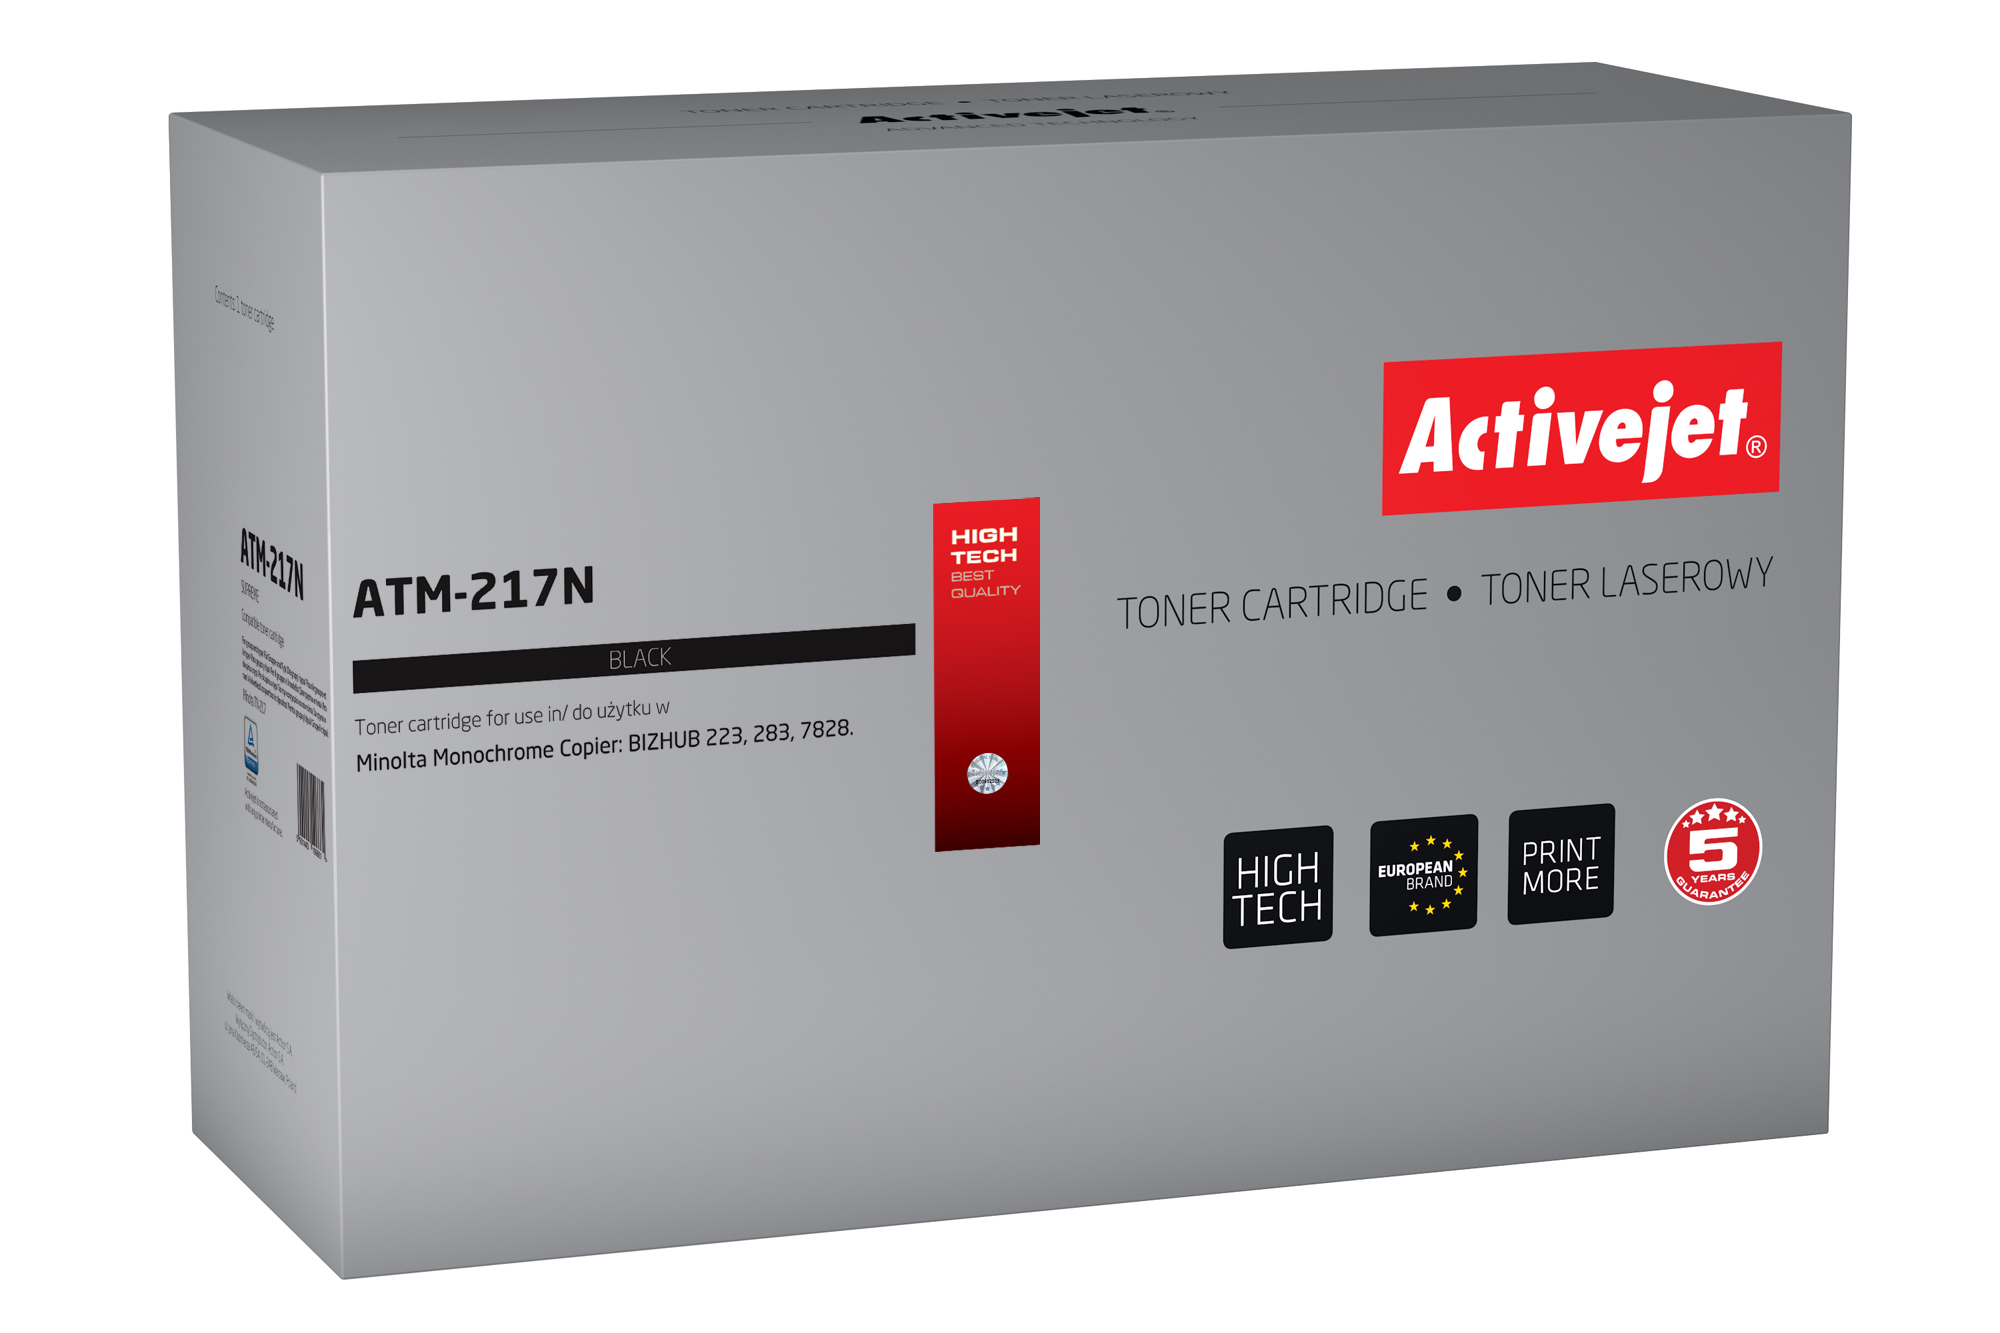 Actis toner do Minolta TN217 new ATM-217N